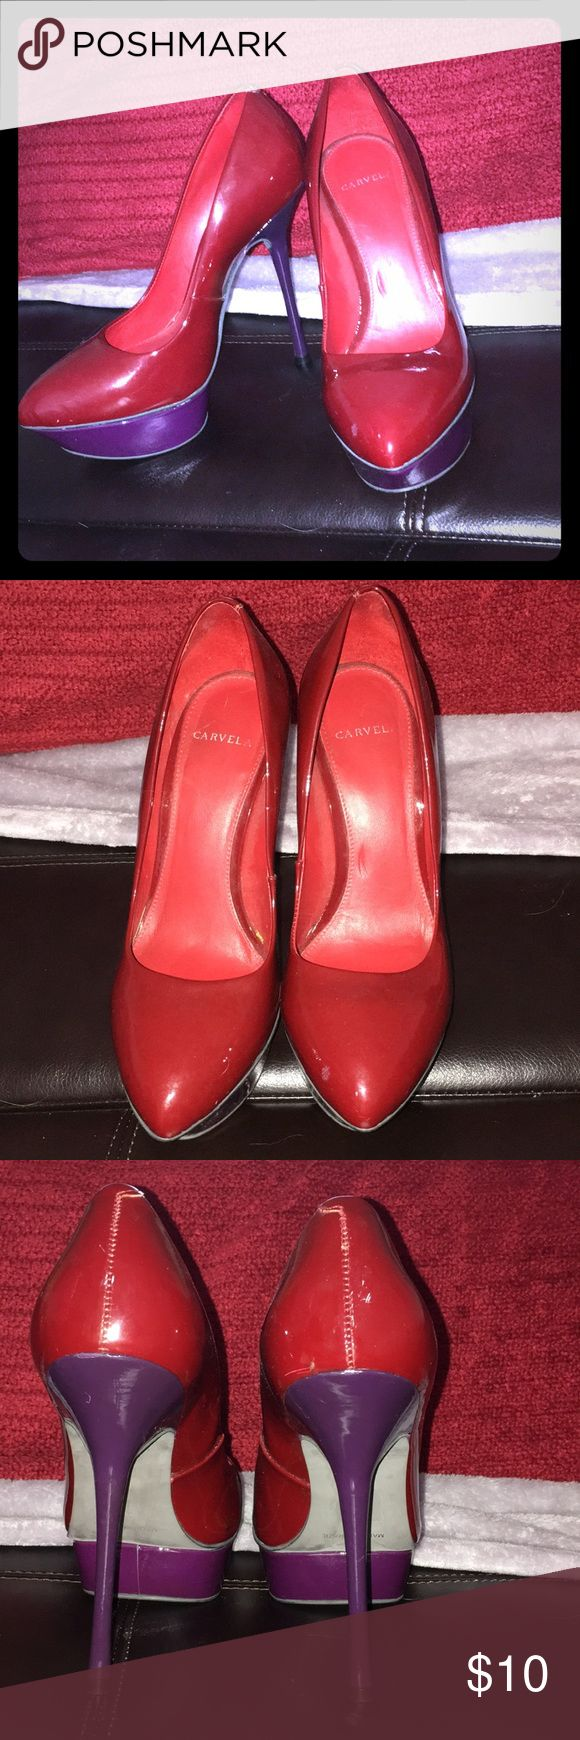 Carvela red and purple heels There WAS black marks but I easily got it off with rubbing alcohol and I cleaned it with water too so it doesn't smell like rubbing alcohol. Fits more like a 6.5-7. They look super fine and professional 😍 carvela Shoes Platforms